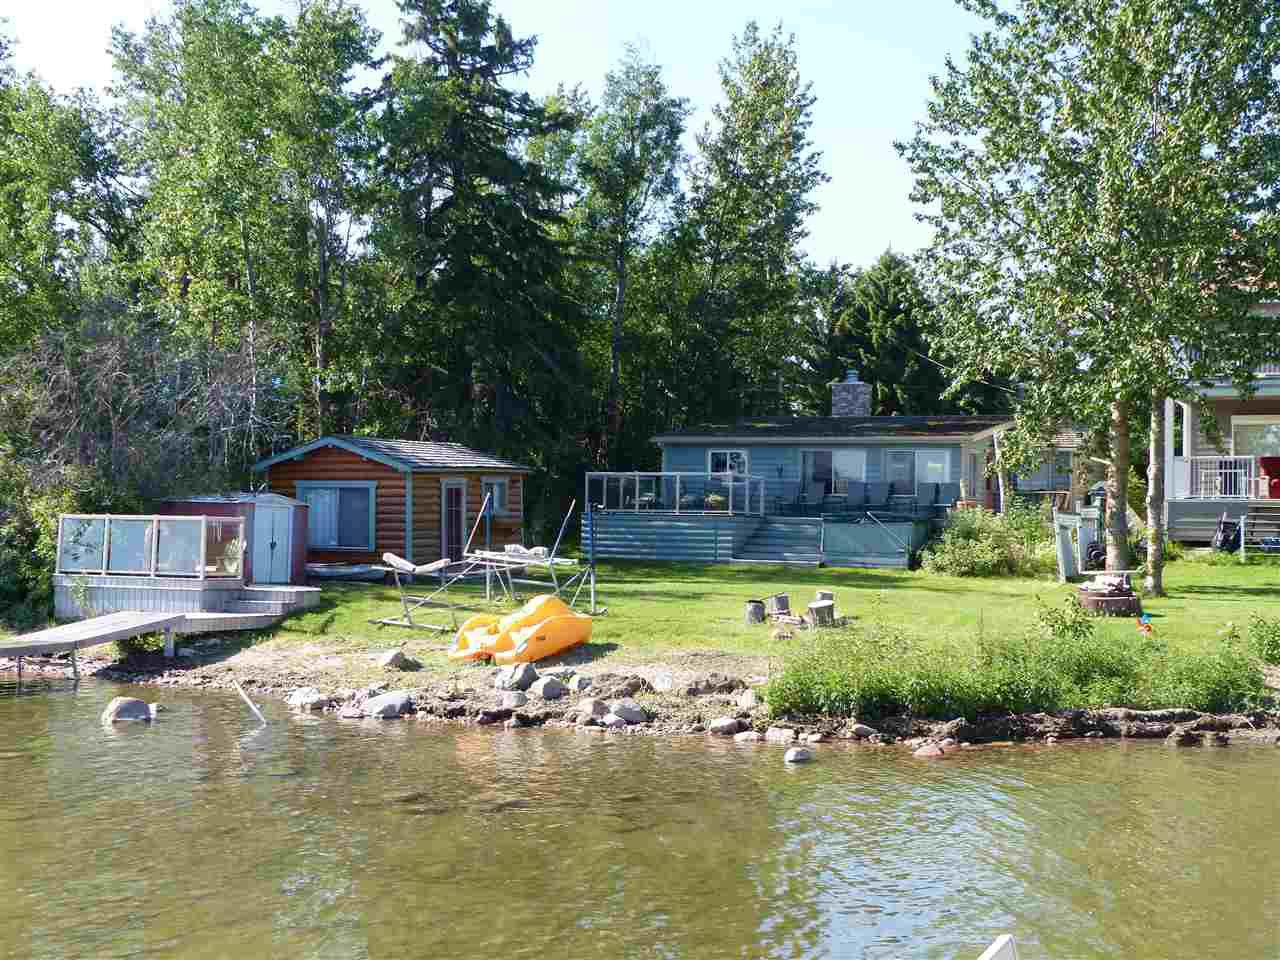 Main Photo: 14 Viola Beach: Rural Wetaskiwin County House for sale : MLS®# E4182406